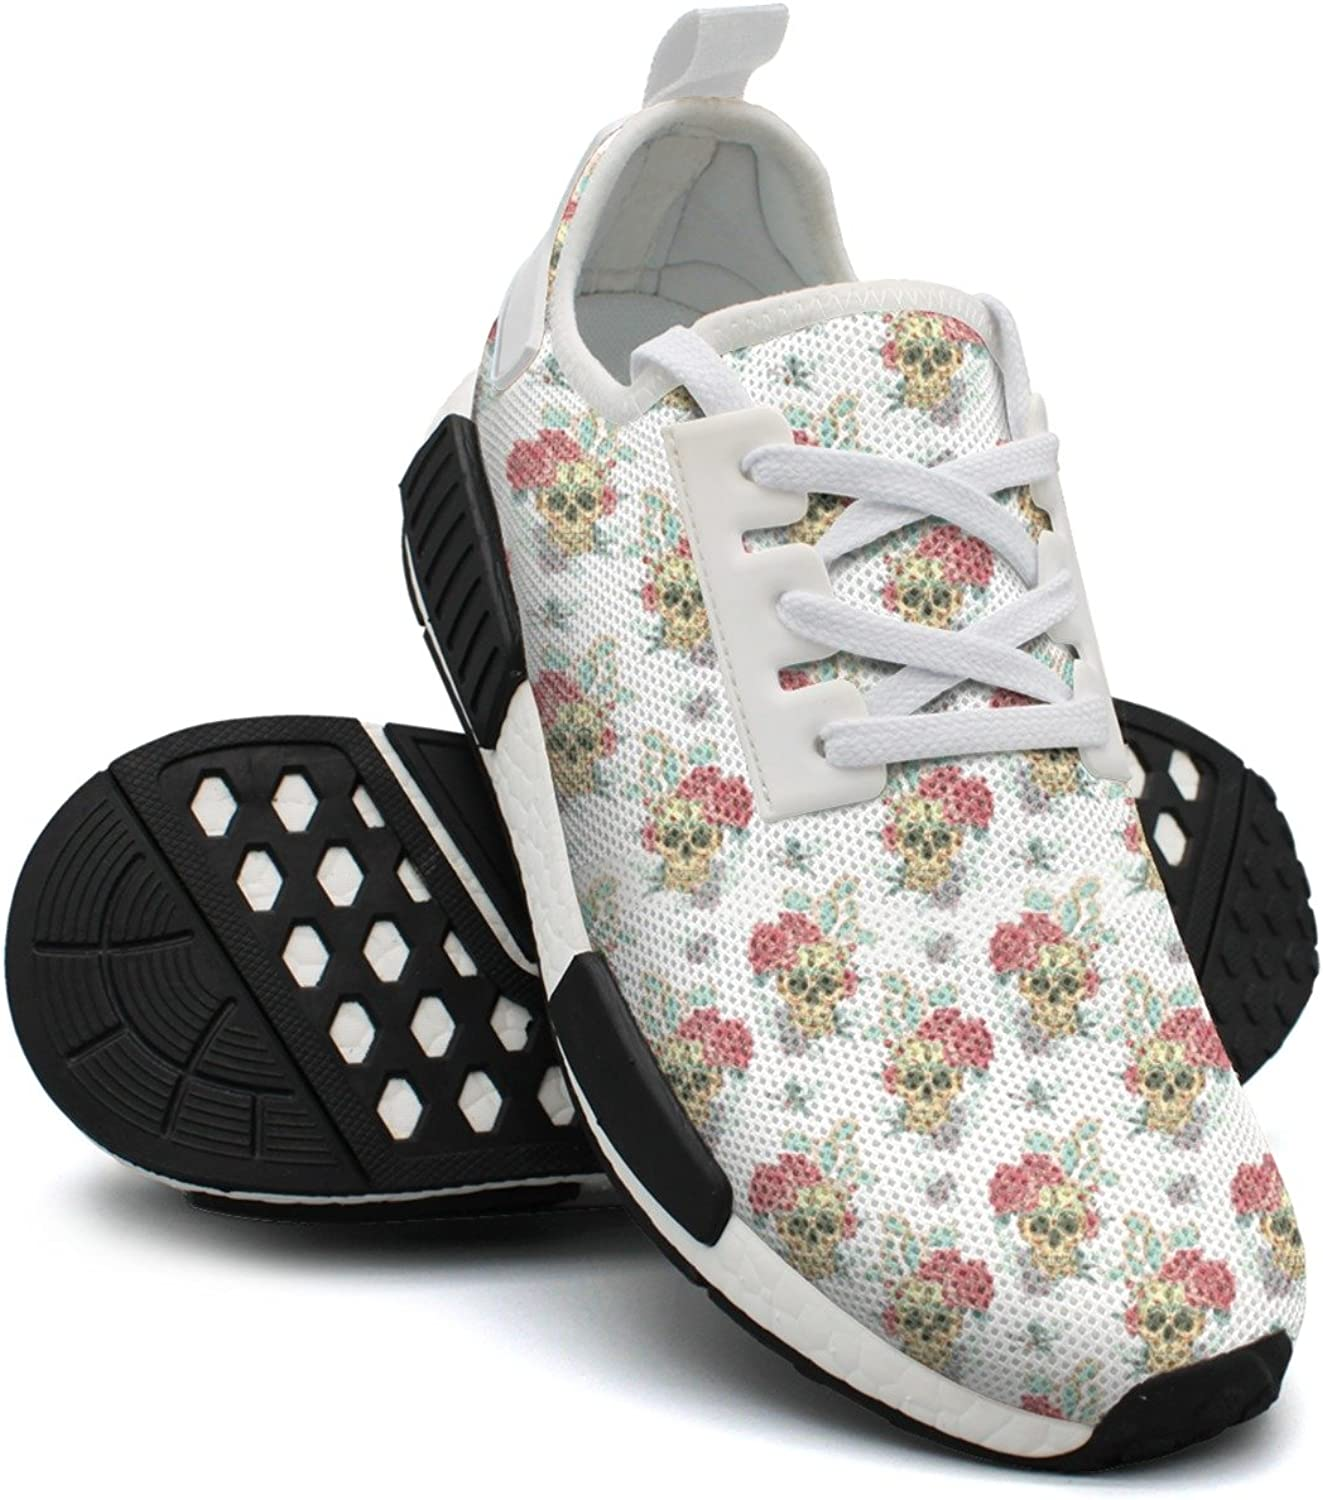 Skulls and Bueaty Flowers Women's Vintage Lightweight Volleyball Sneakers Gym Outdoor Sports shoes